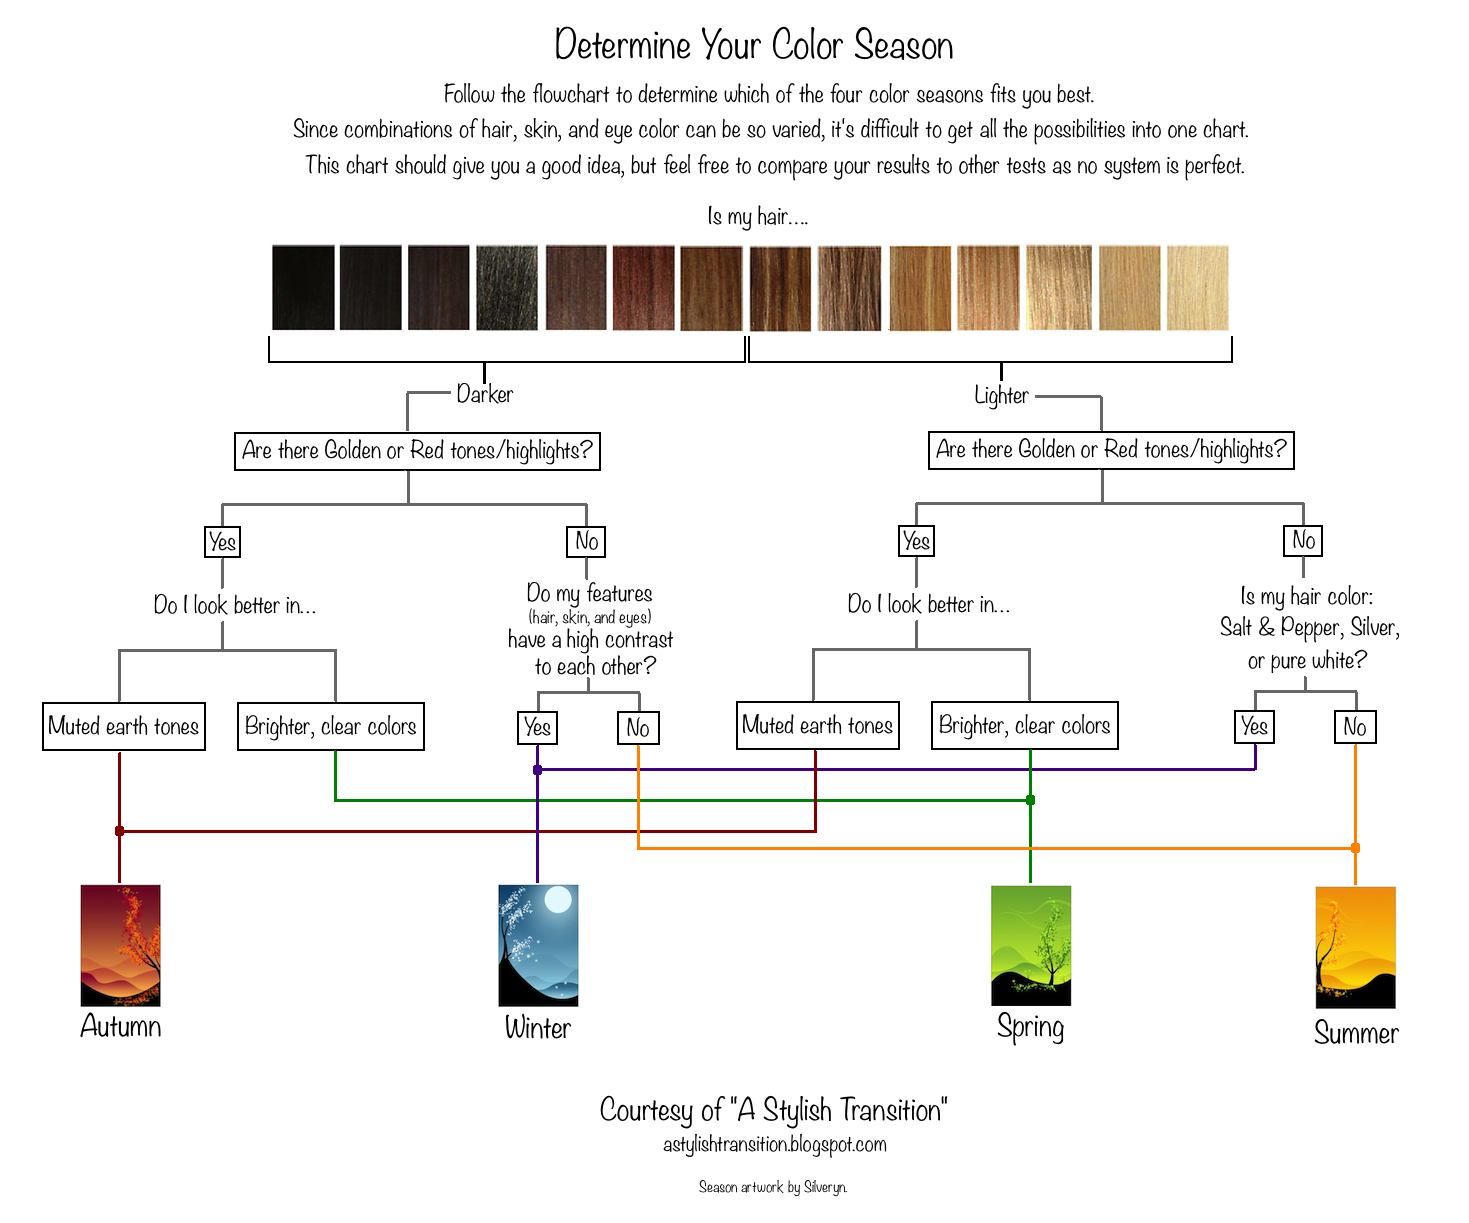 A Stylish Transition Finding Your Color Season